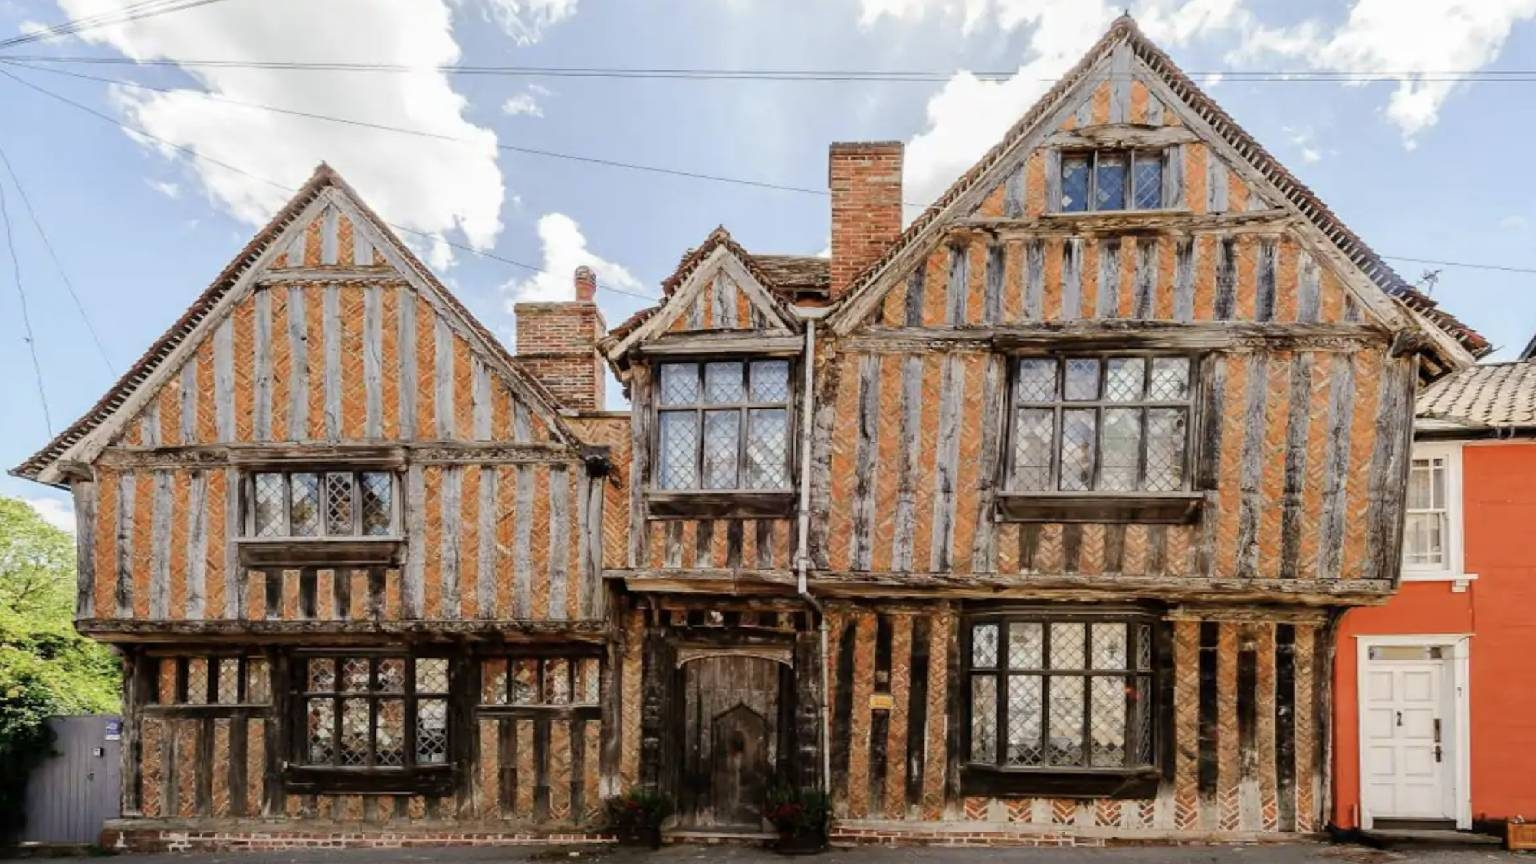 Harry Potter's house available on Airbnb.